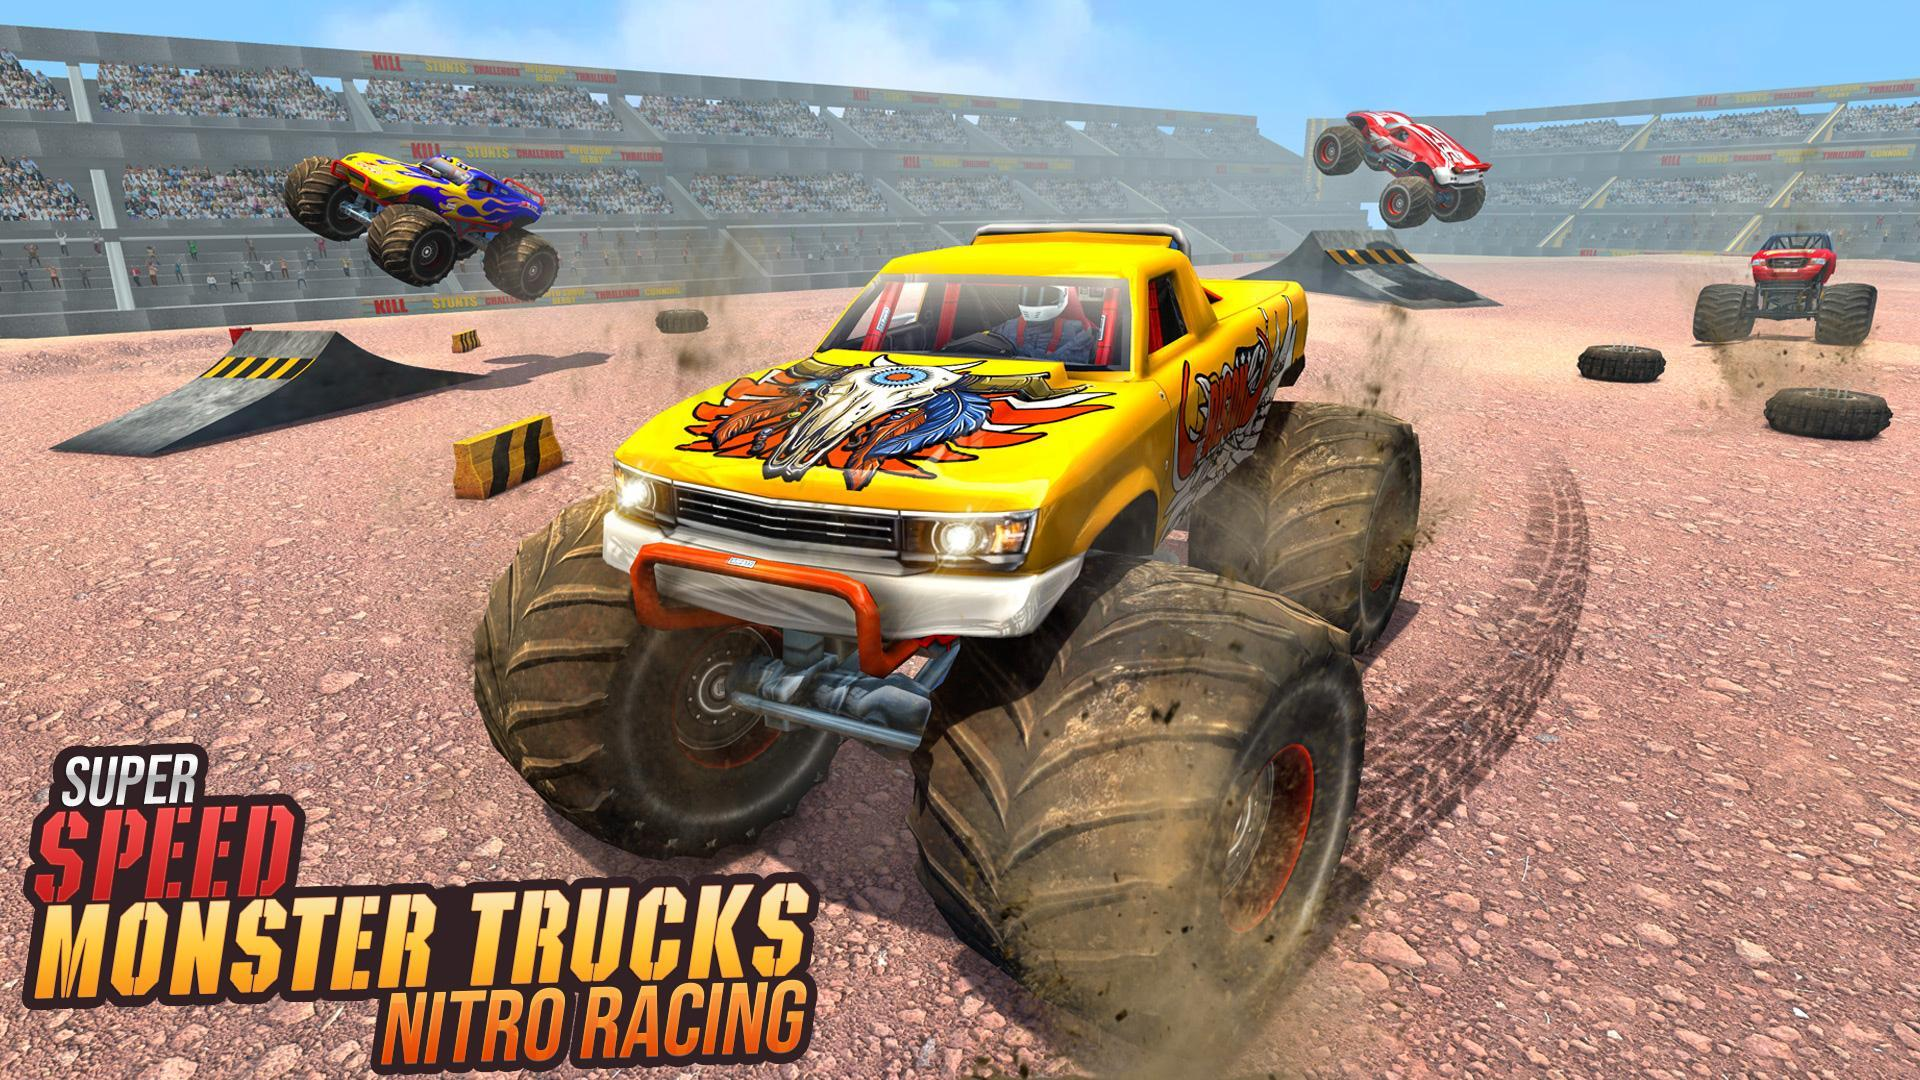 Real Monster Truck Demolition Derby Crash Stunts For Android Apk Download